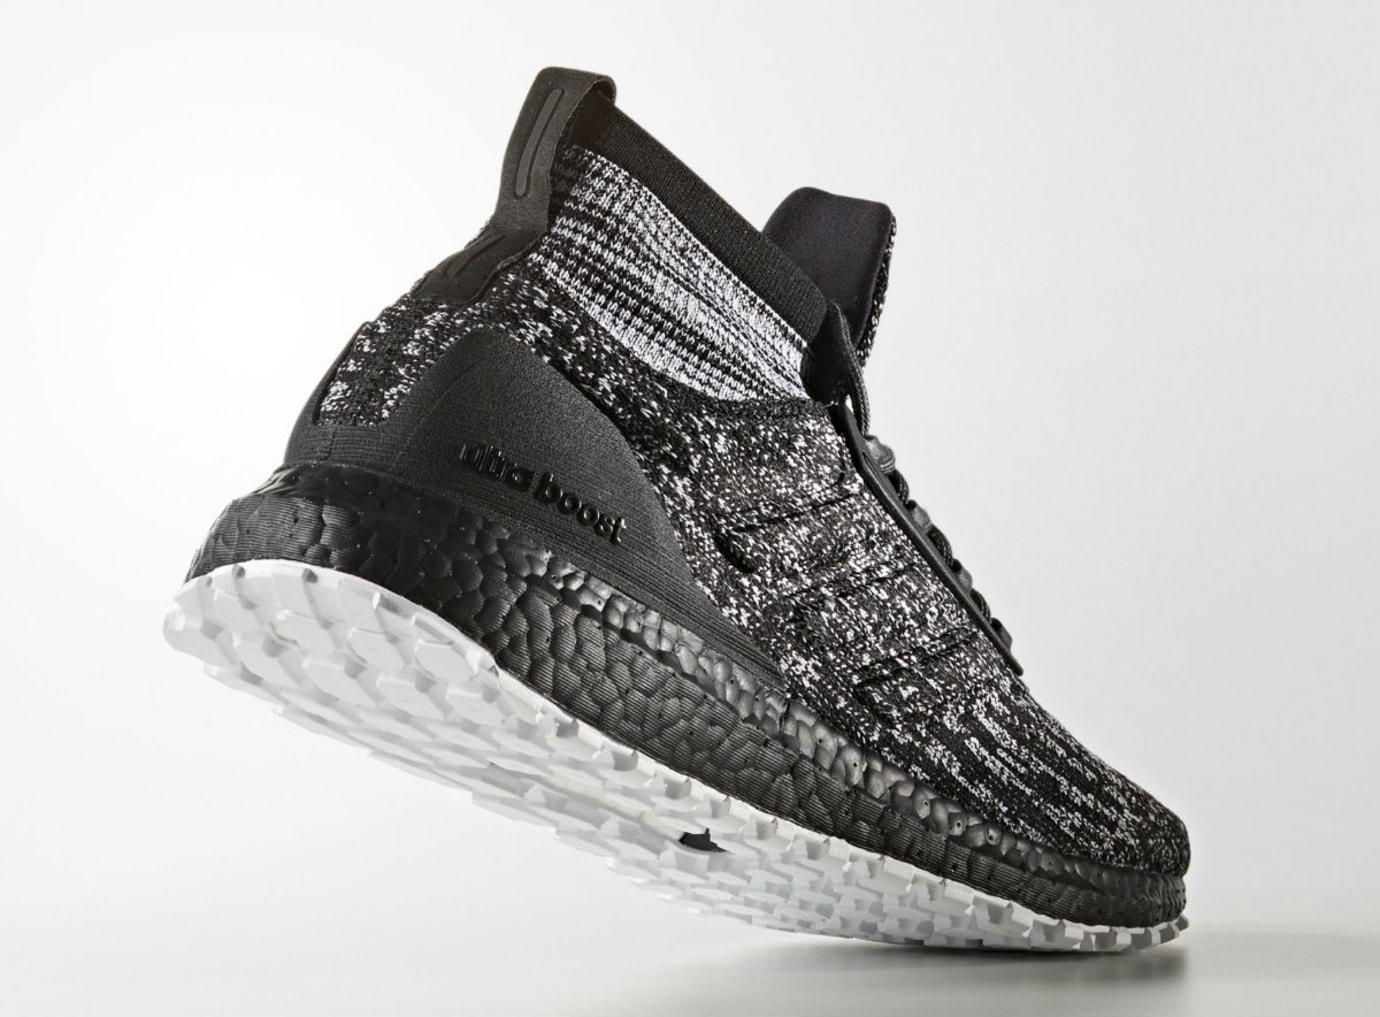 Adidas Ultra Boost ATR Mid Oreo Black White Release Date Lateral